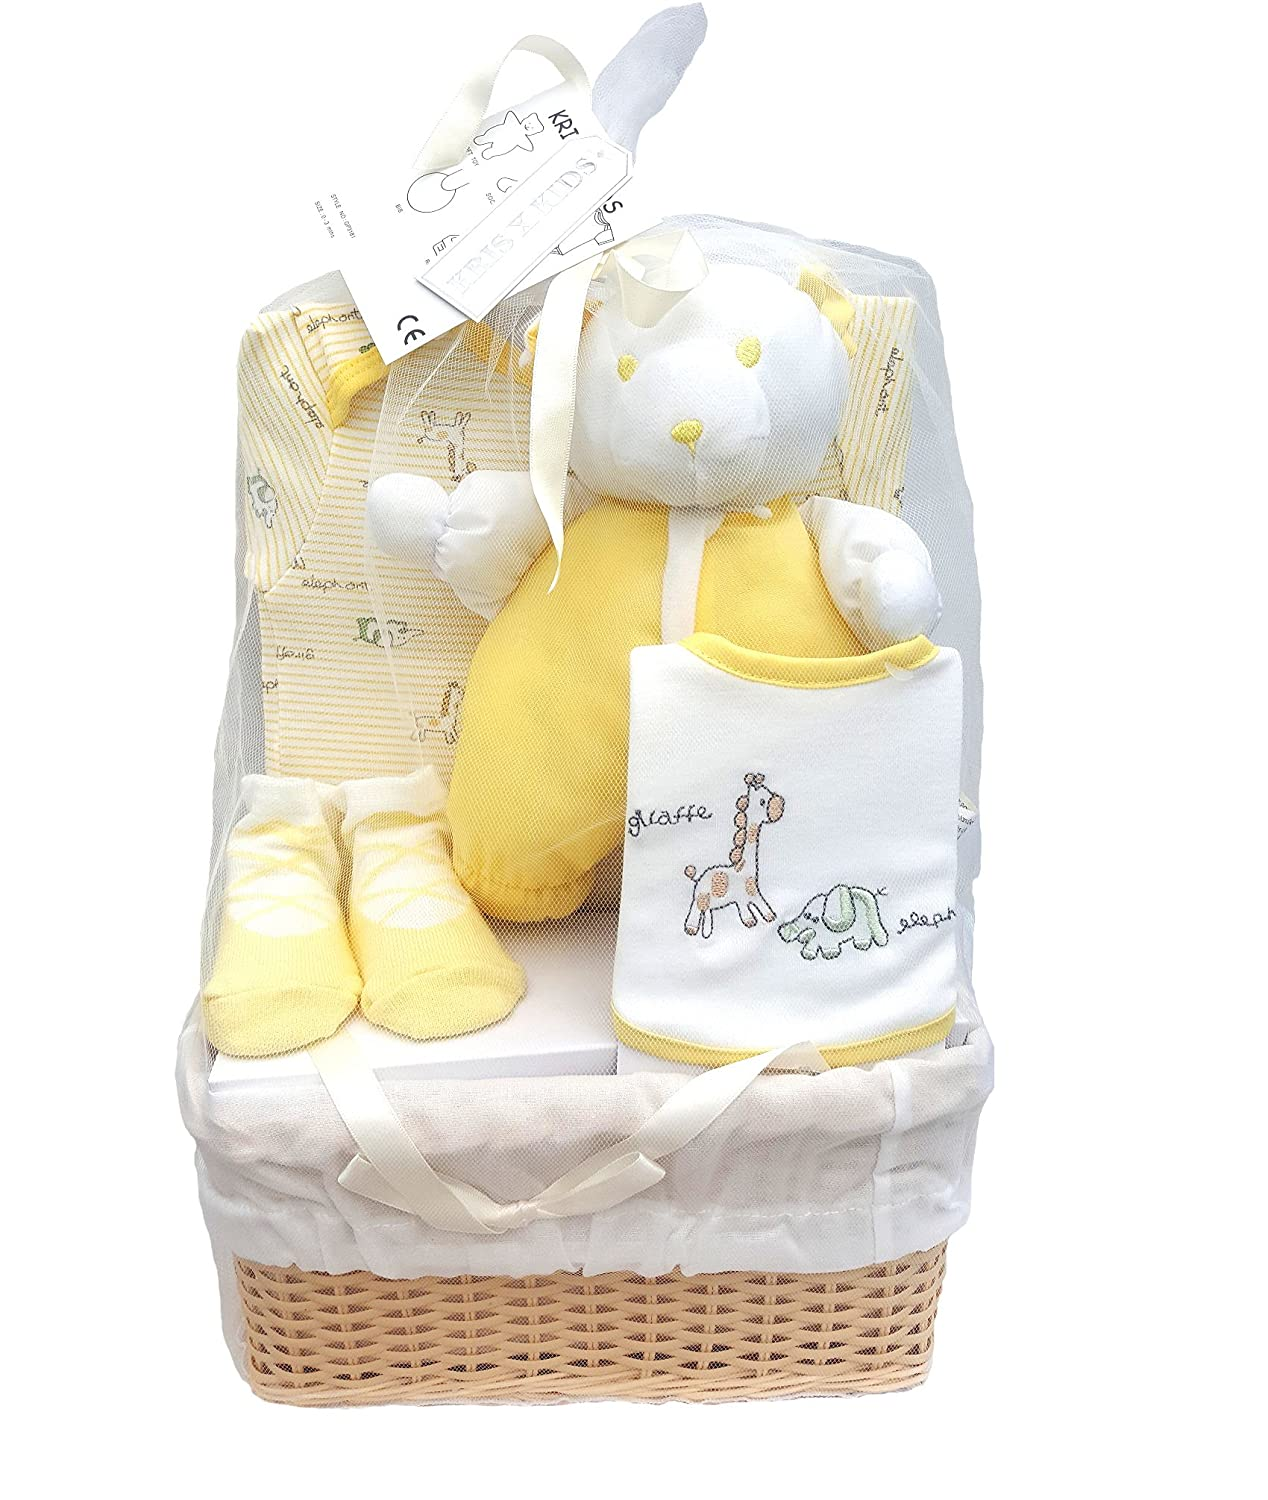 Bee Bo Baby Gift Set with Bodysuit, Bib, Socks and Teddy Bear in a Rattan Basket. 0 - 3 Months. Available in Blue, Pink, Cream, Lemon or White. BabyCenter